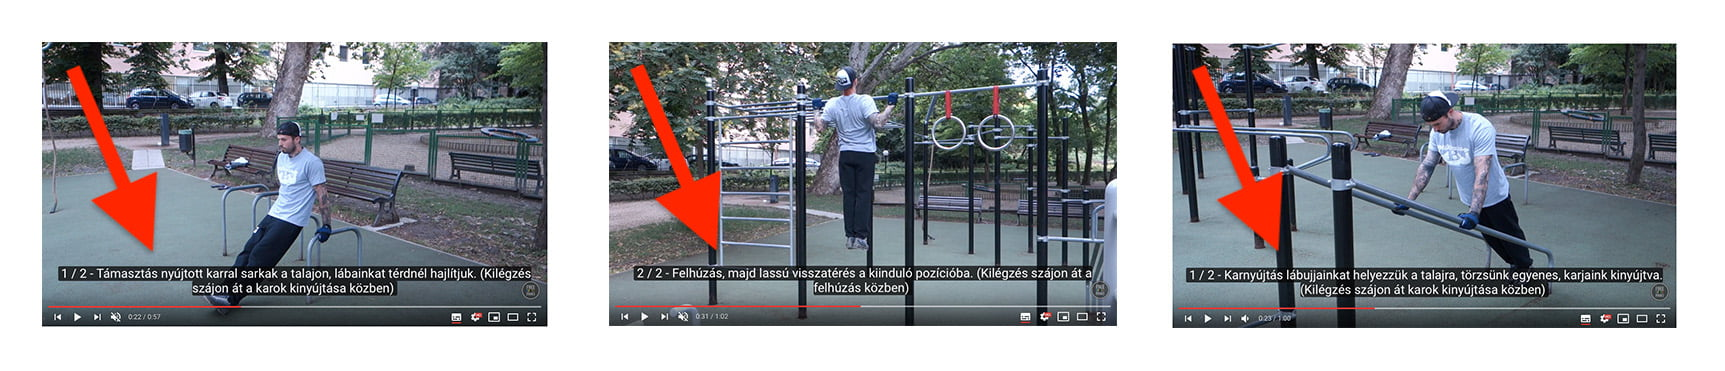 Train Smart in Workout Park videos with subtitle